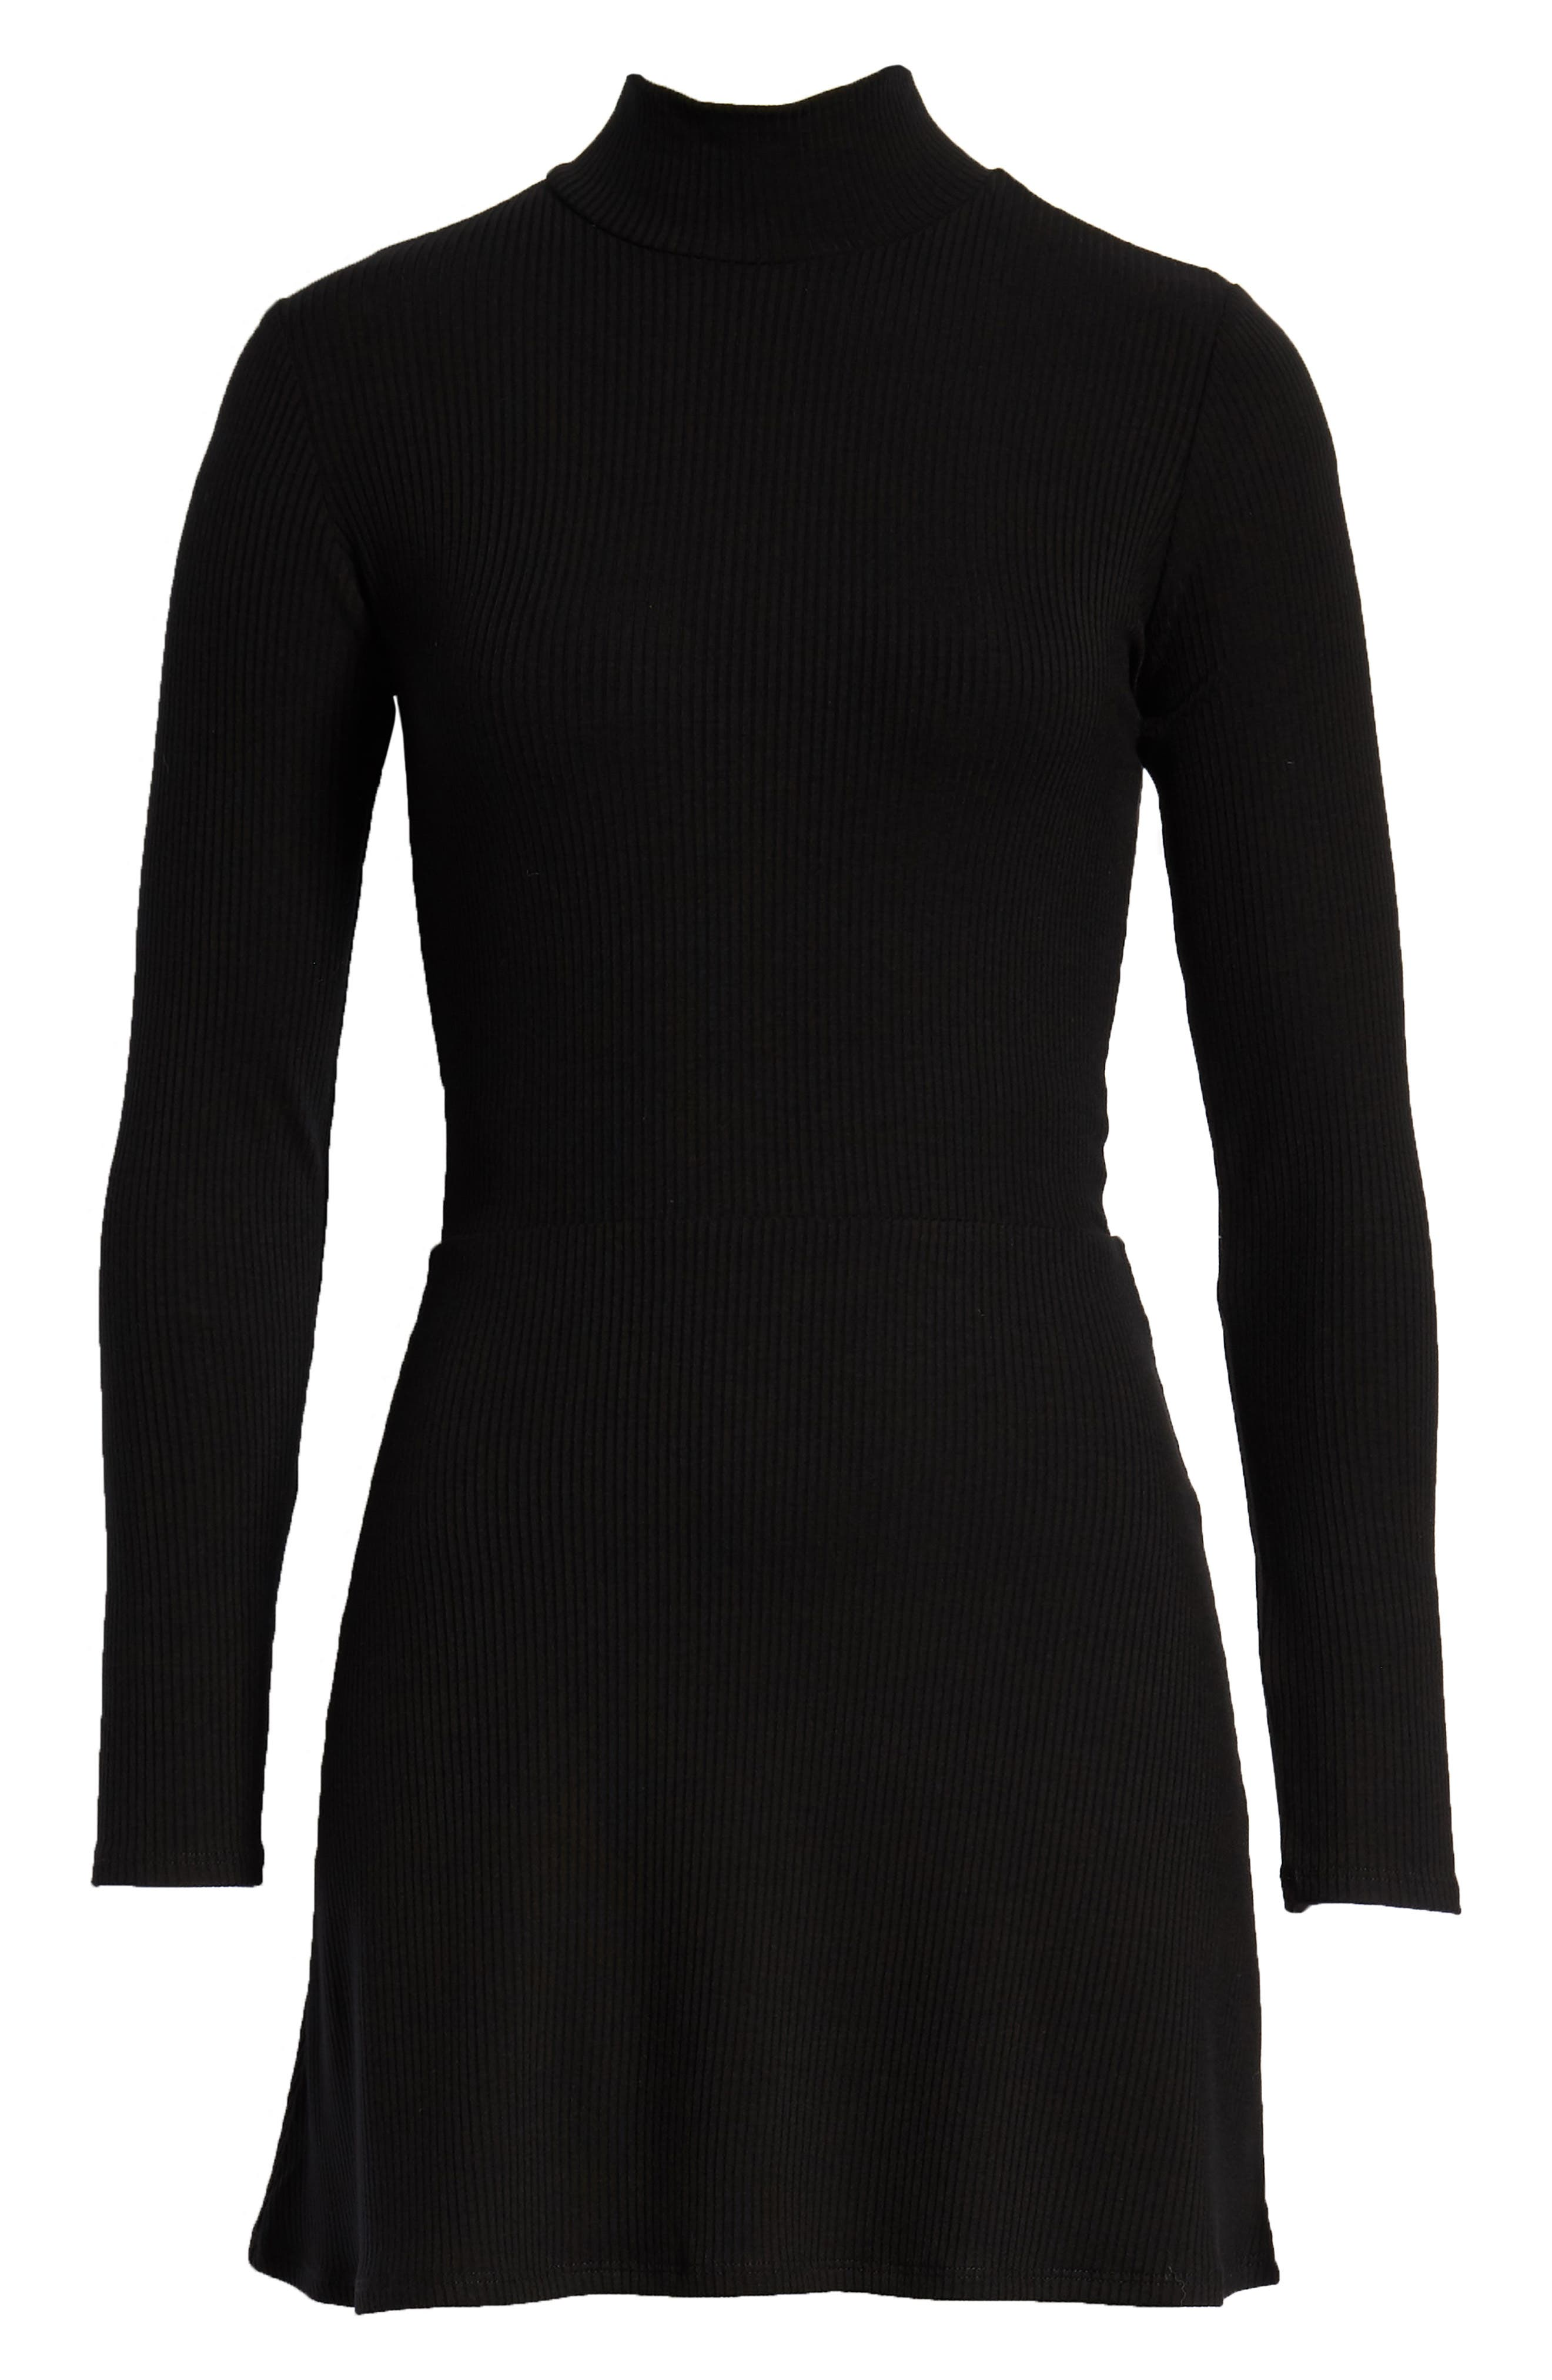 REFORMATION, Maya Turtleneck Body-Con Dress, Alternate thumbnail 6, color, BLACK